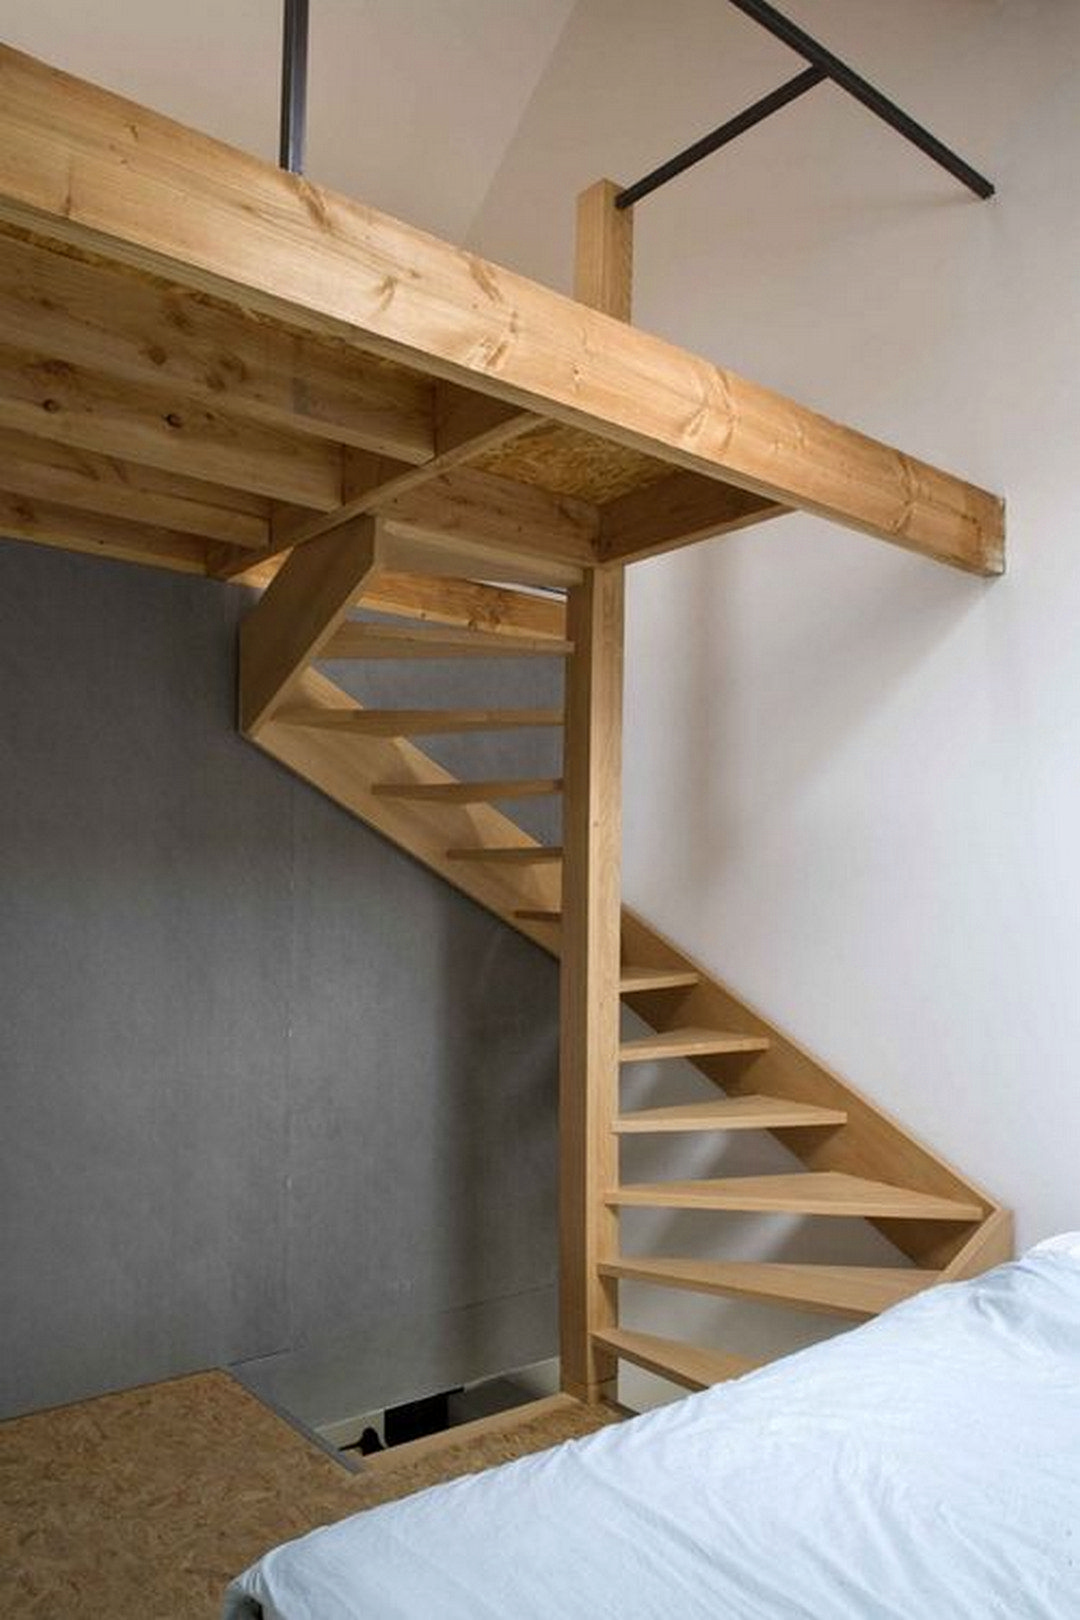 Plywood loft bed plans   WellDesigned Spiral Staircase Ideas  Staircase ideas Spiral